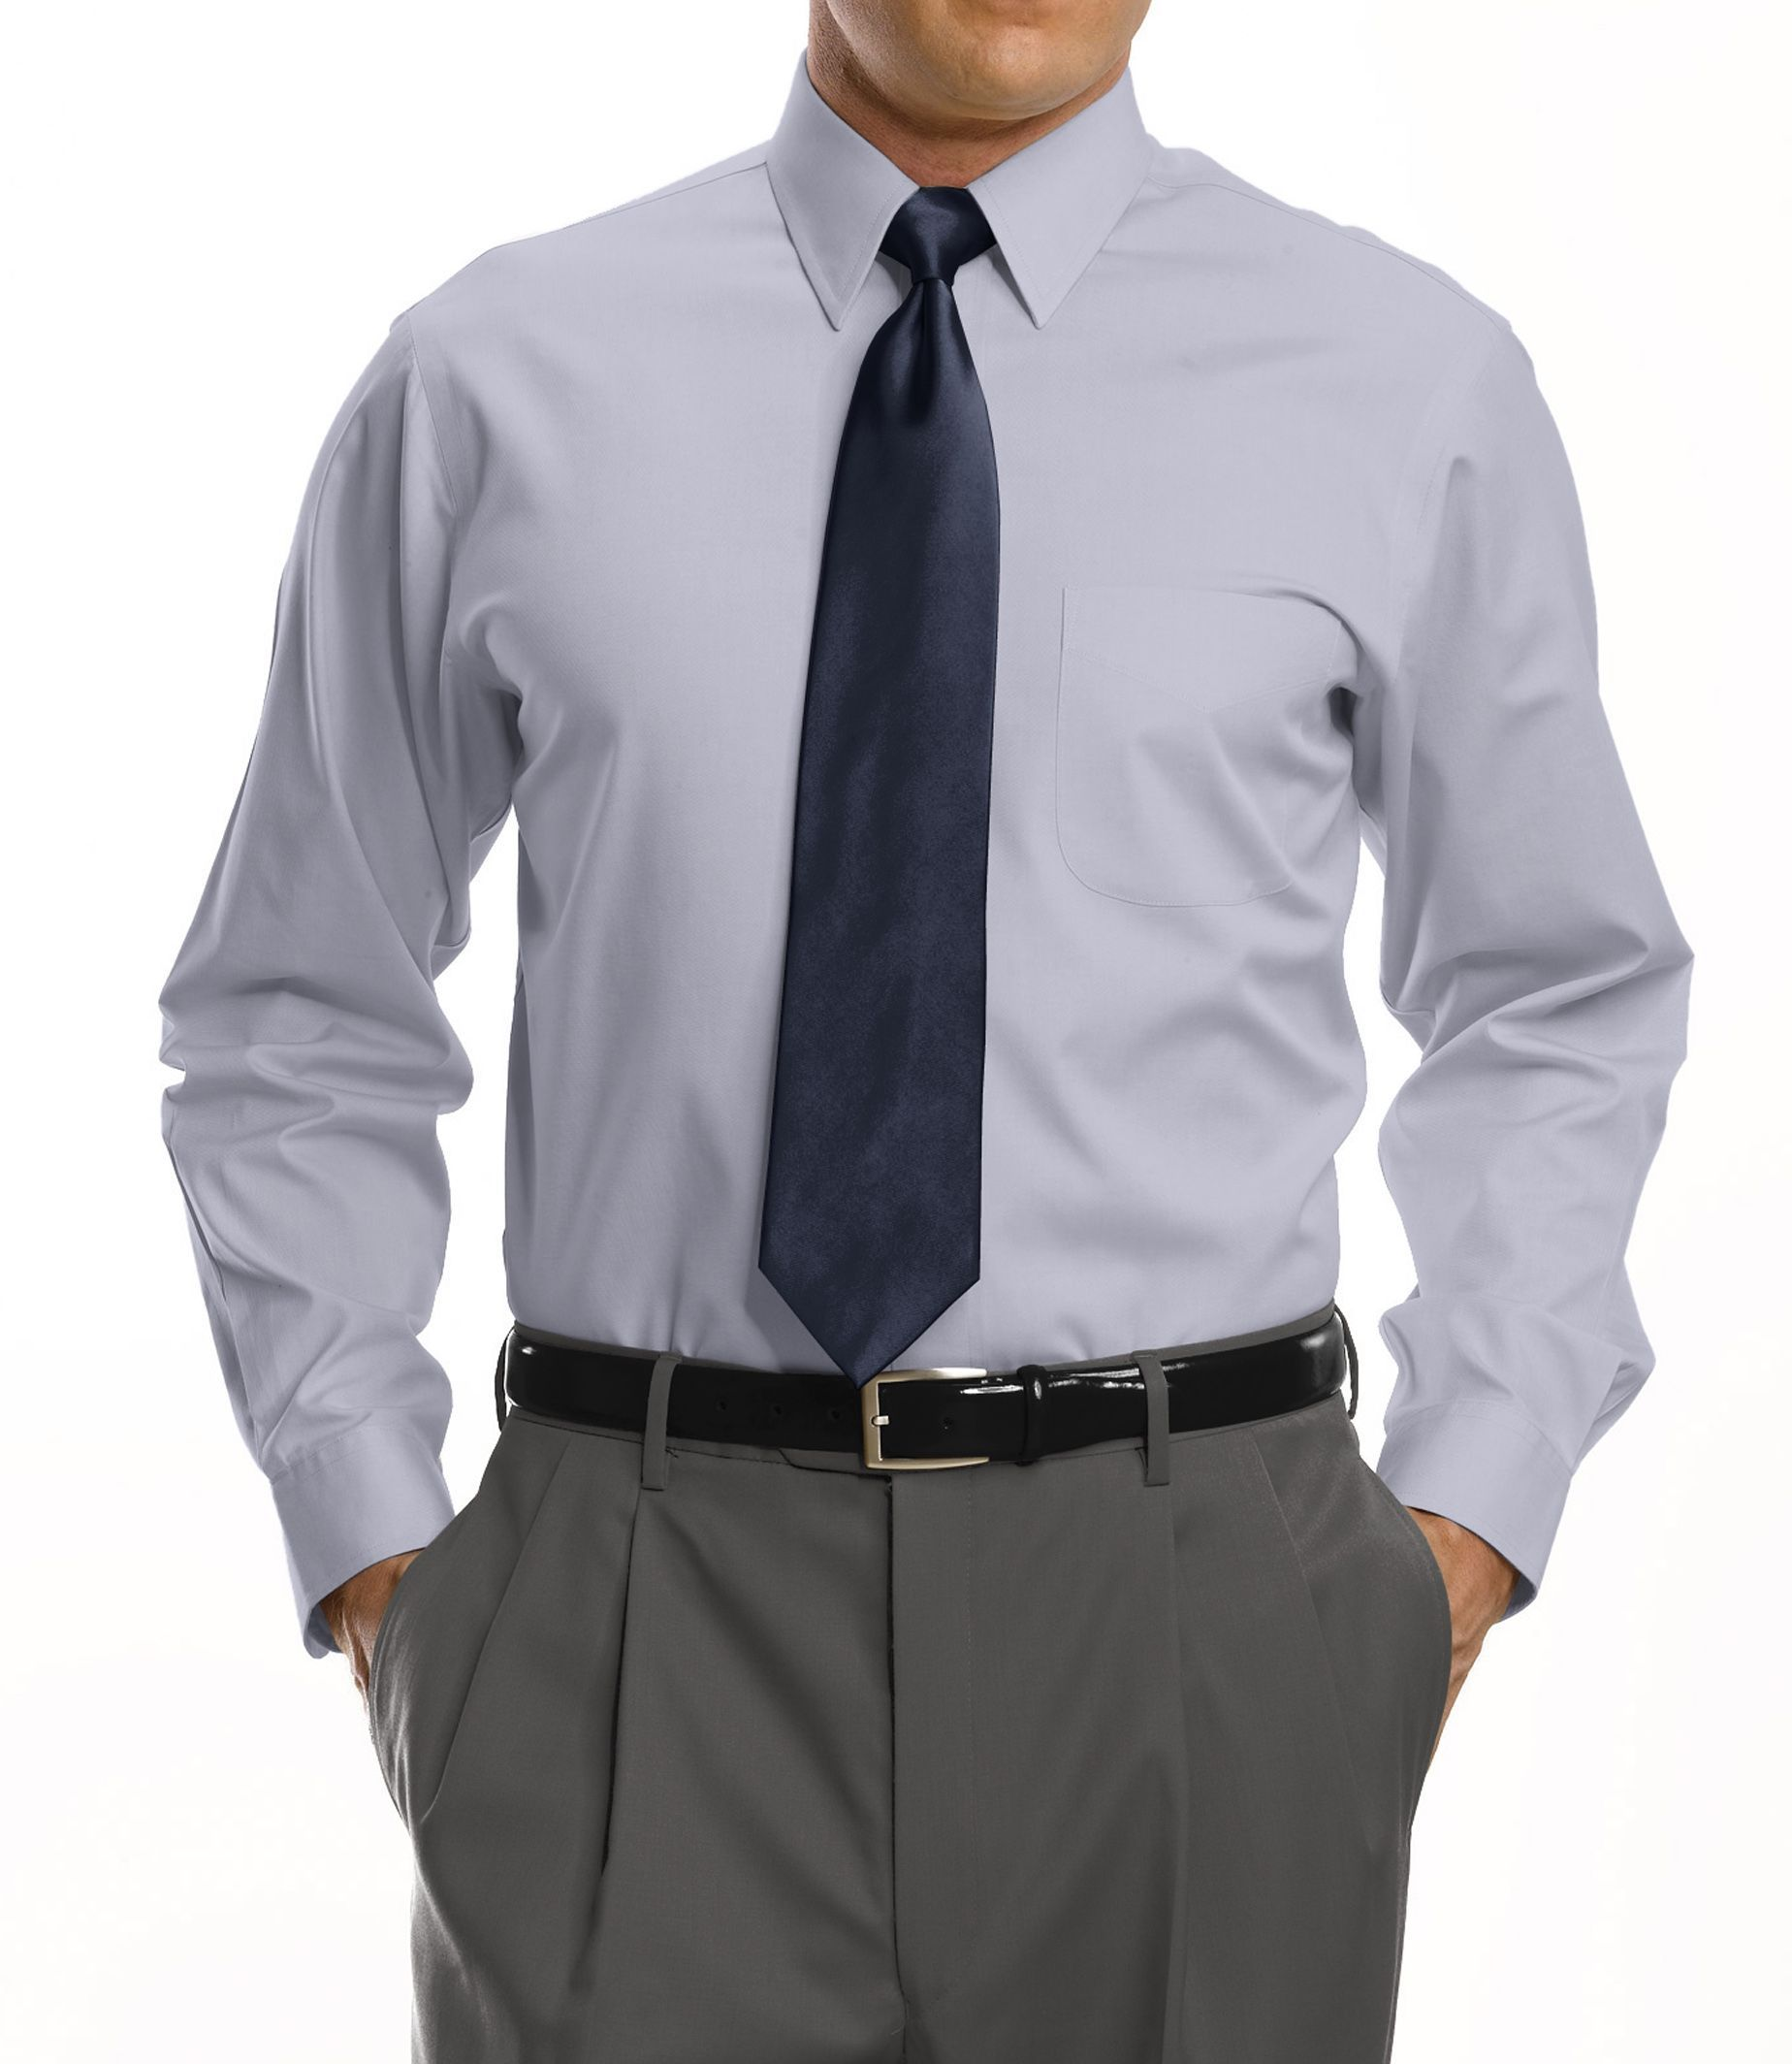 Mens Tailored Fit Dress Shirts